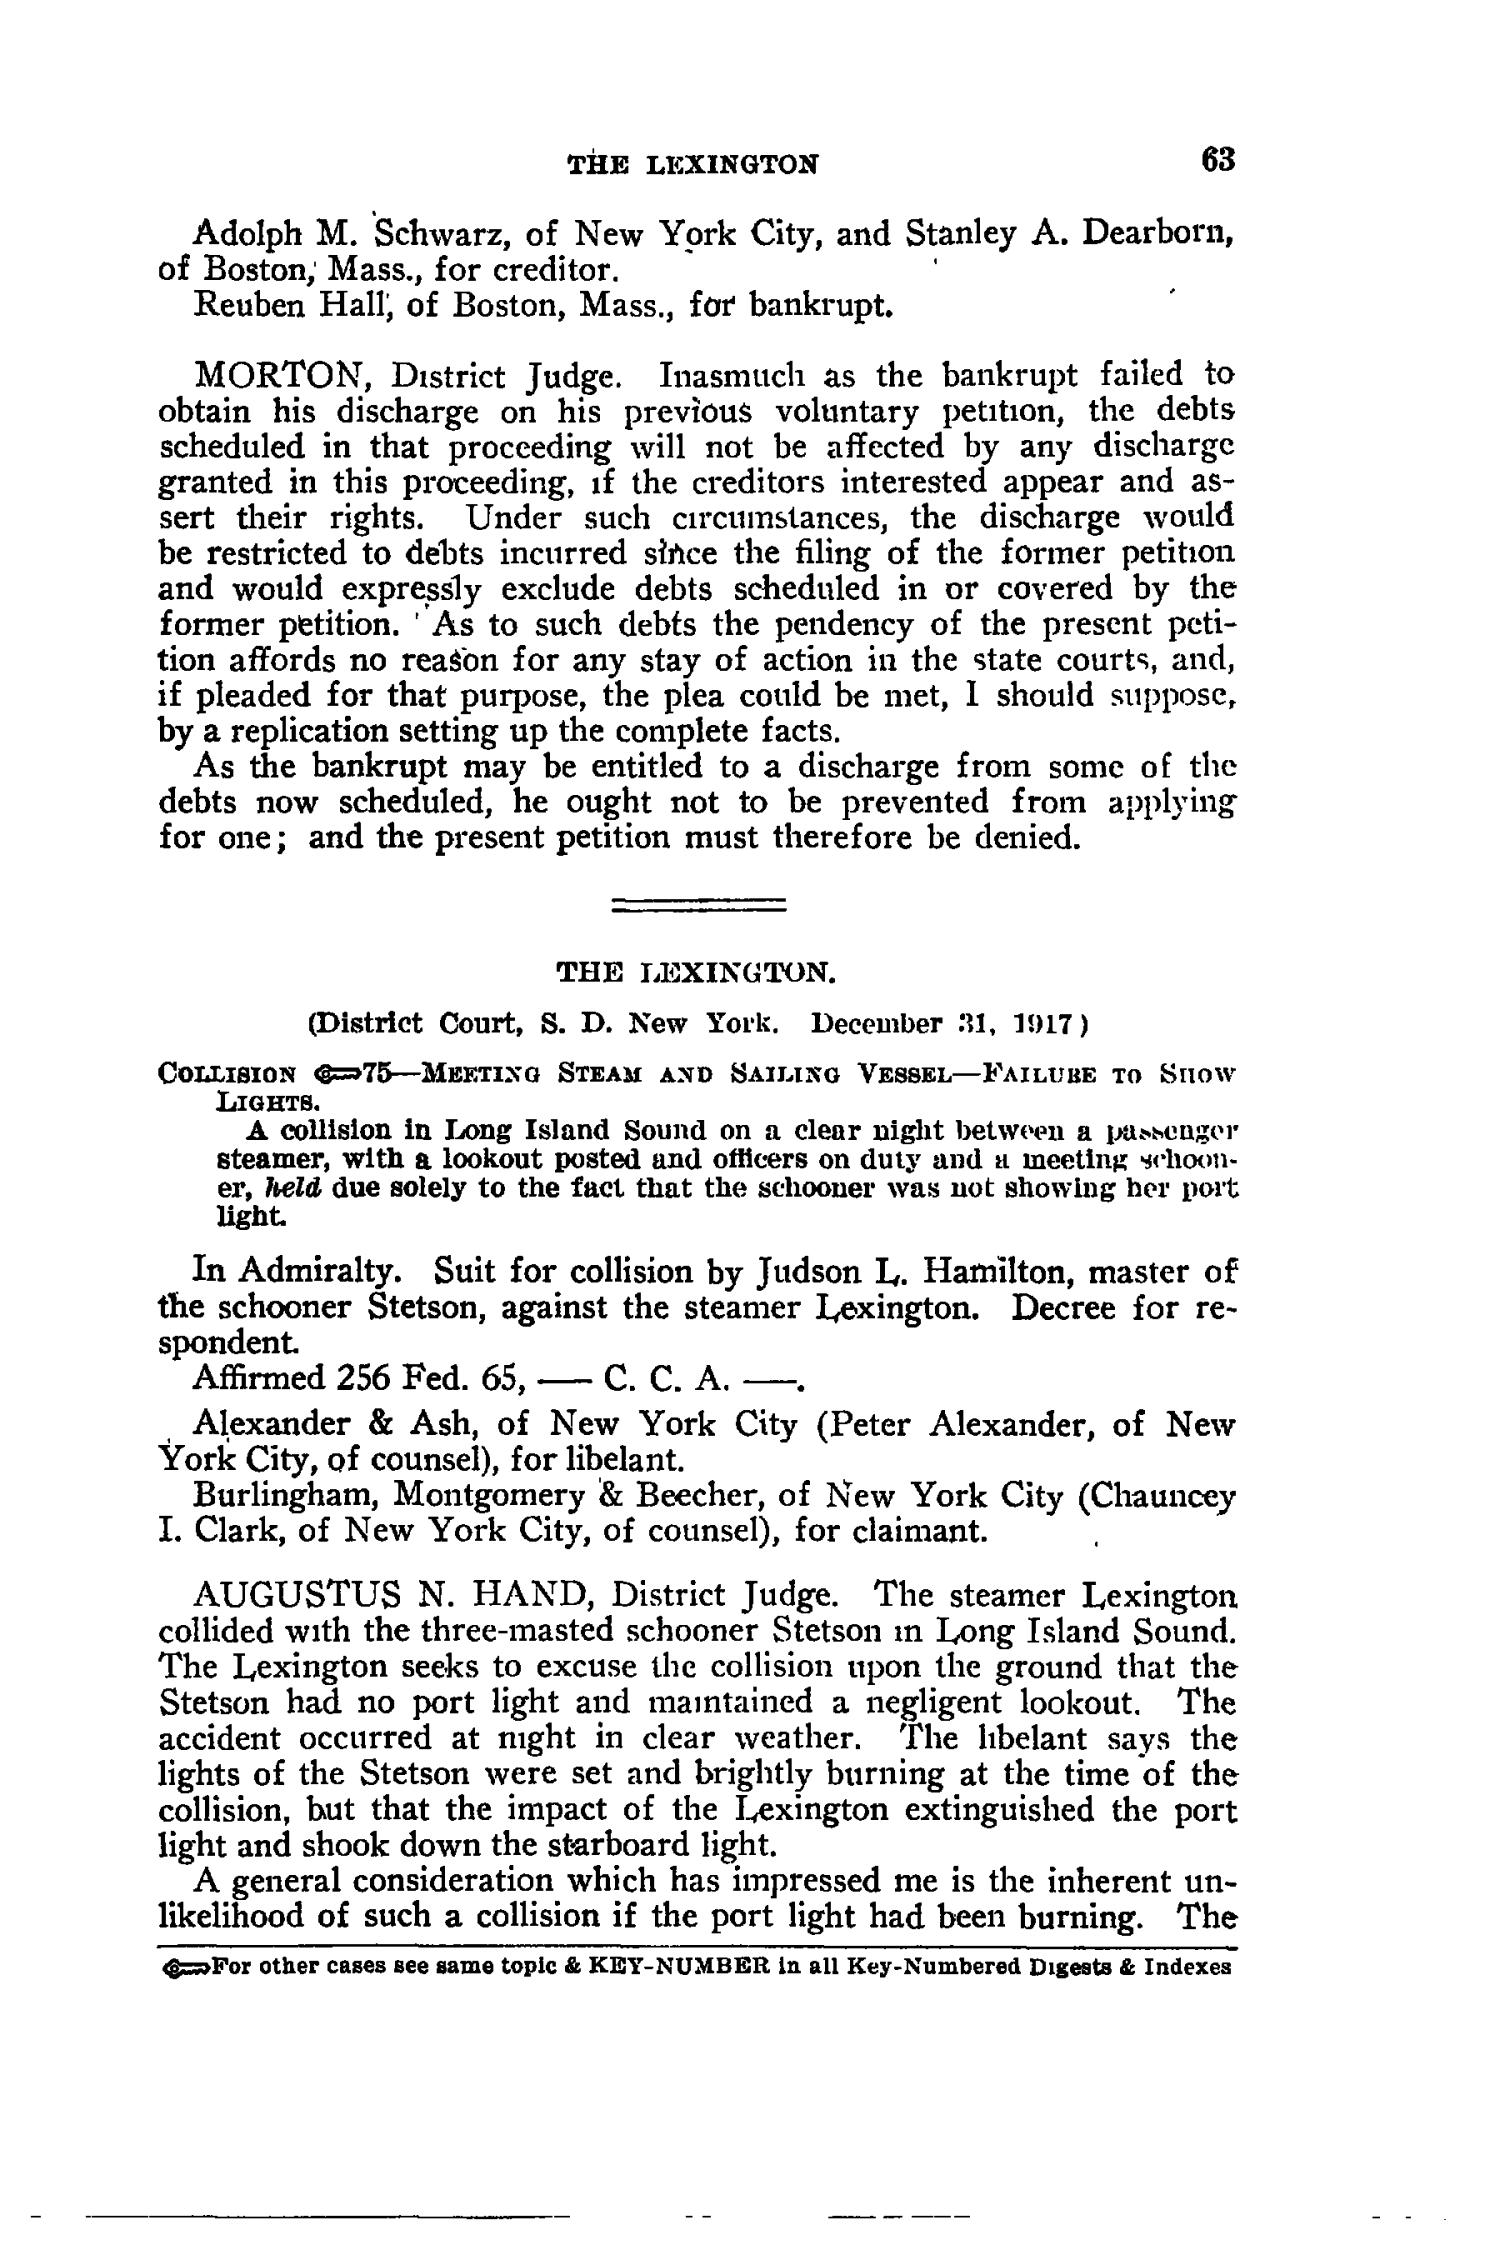 The Federal Reporter with Key-Number Annotations, Volume 256: Cases Argued and Determined in the Circuit Courts of Appeals and District Courts of the United States, May-July, 1919.                                                                                                      63